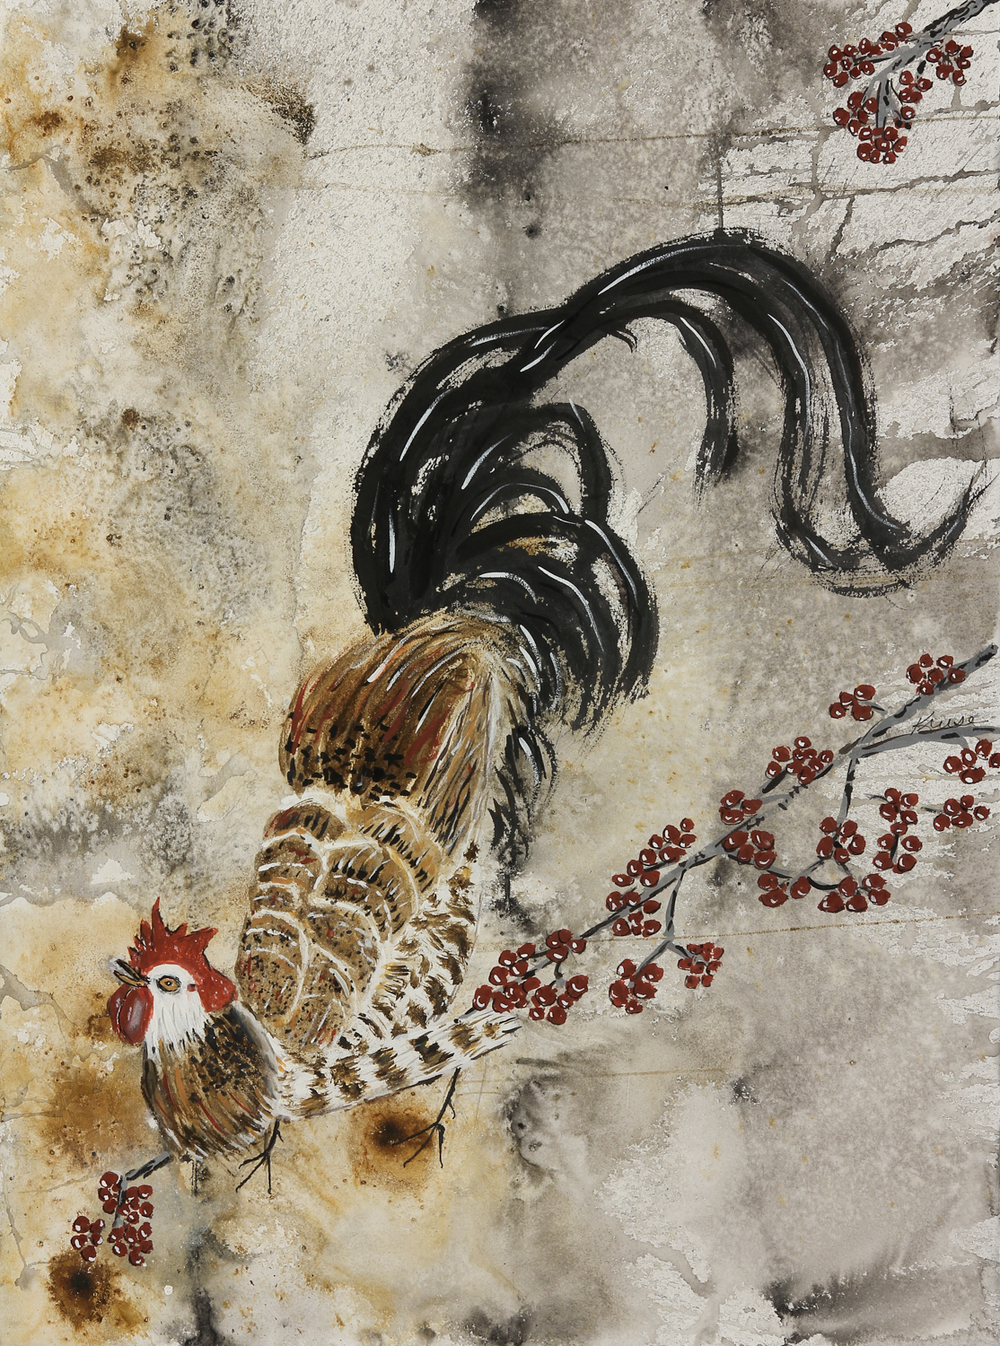 Japanese Rooster in Winter